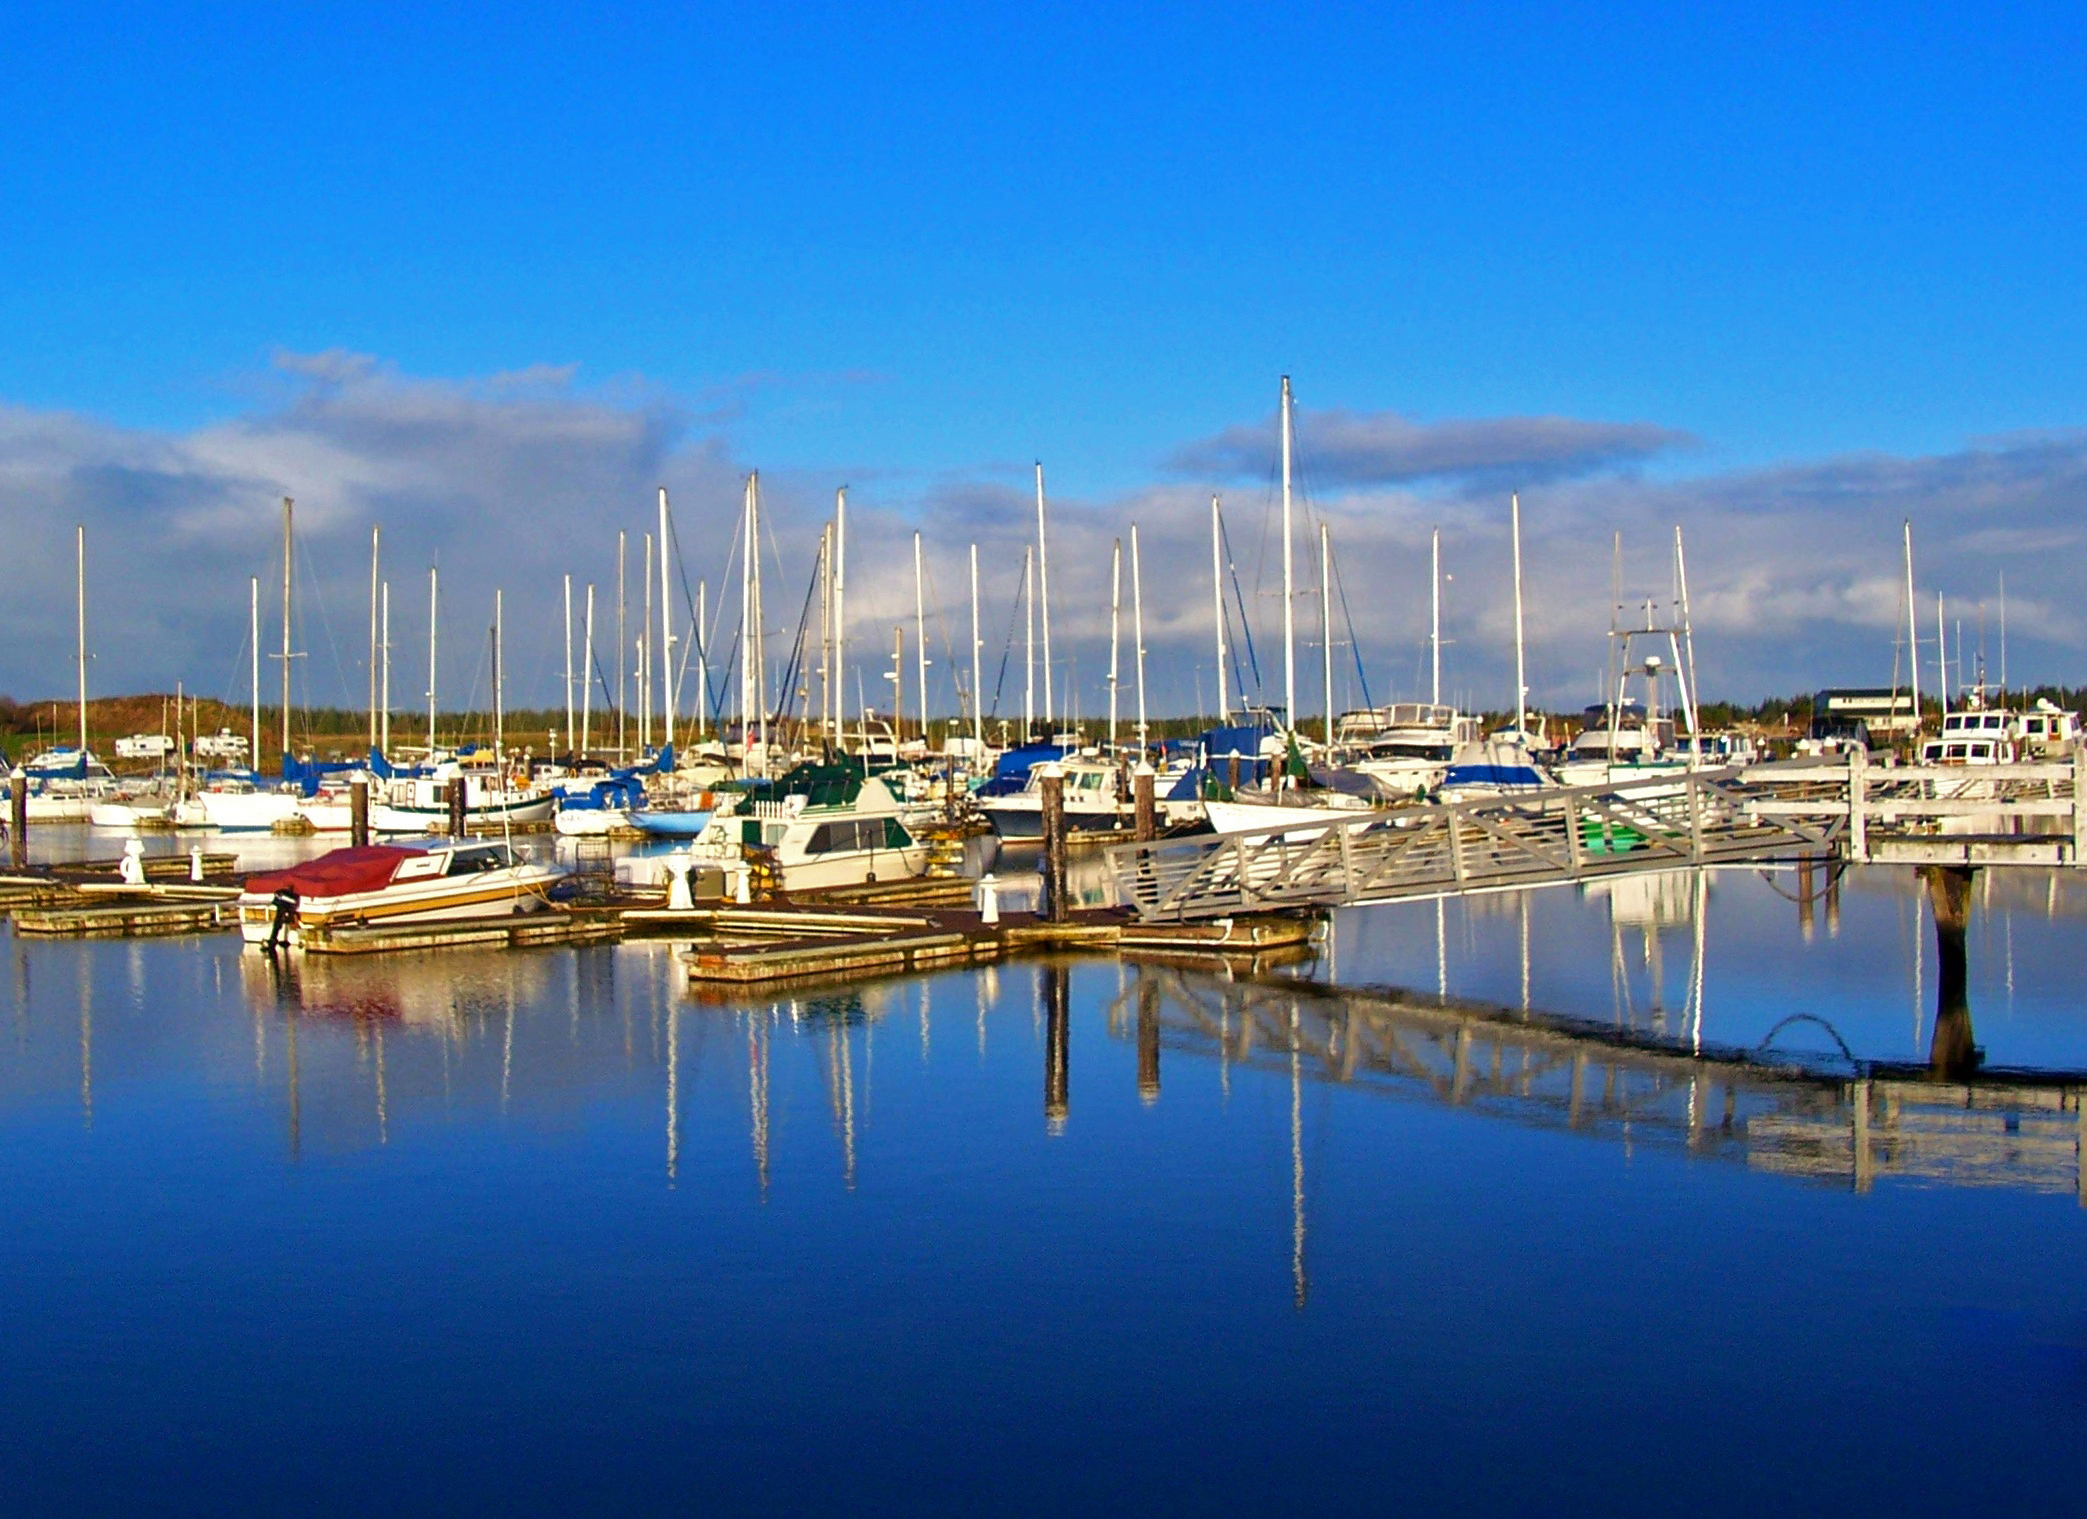 Salmon_Harbor_Marina